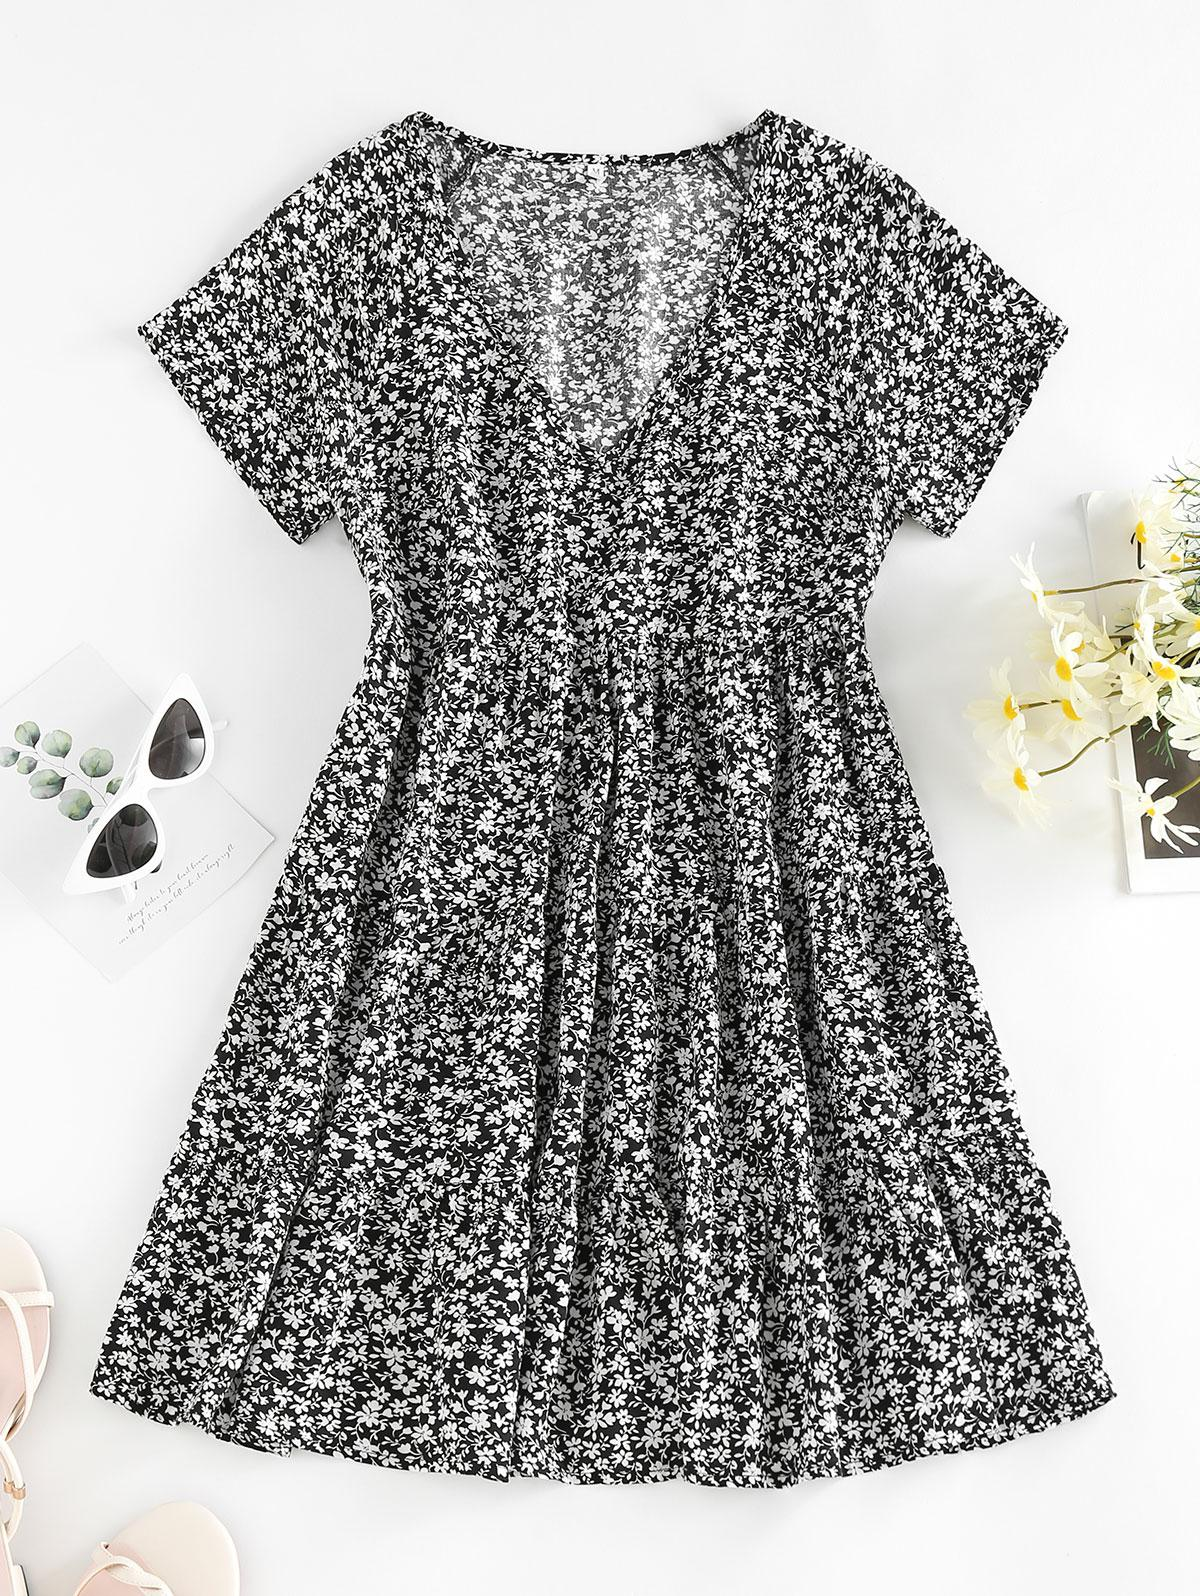 ZAFUL Ditsy Floral A Line Plunging Mini Dress